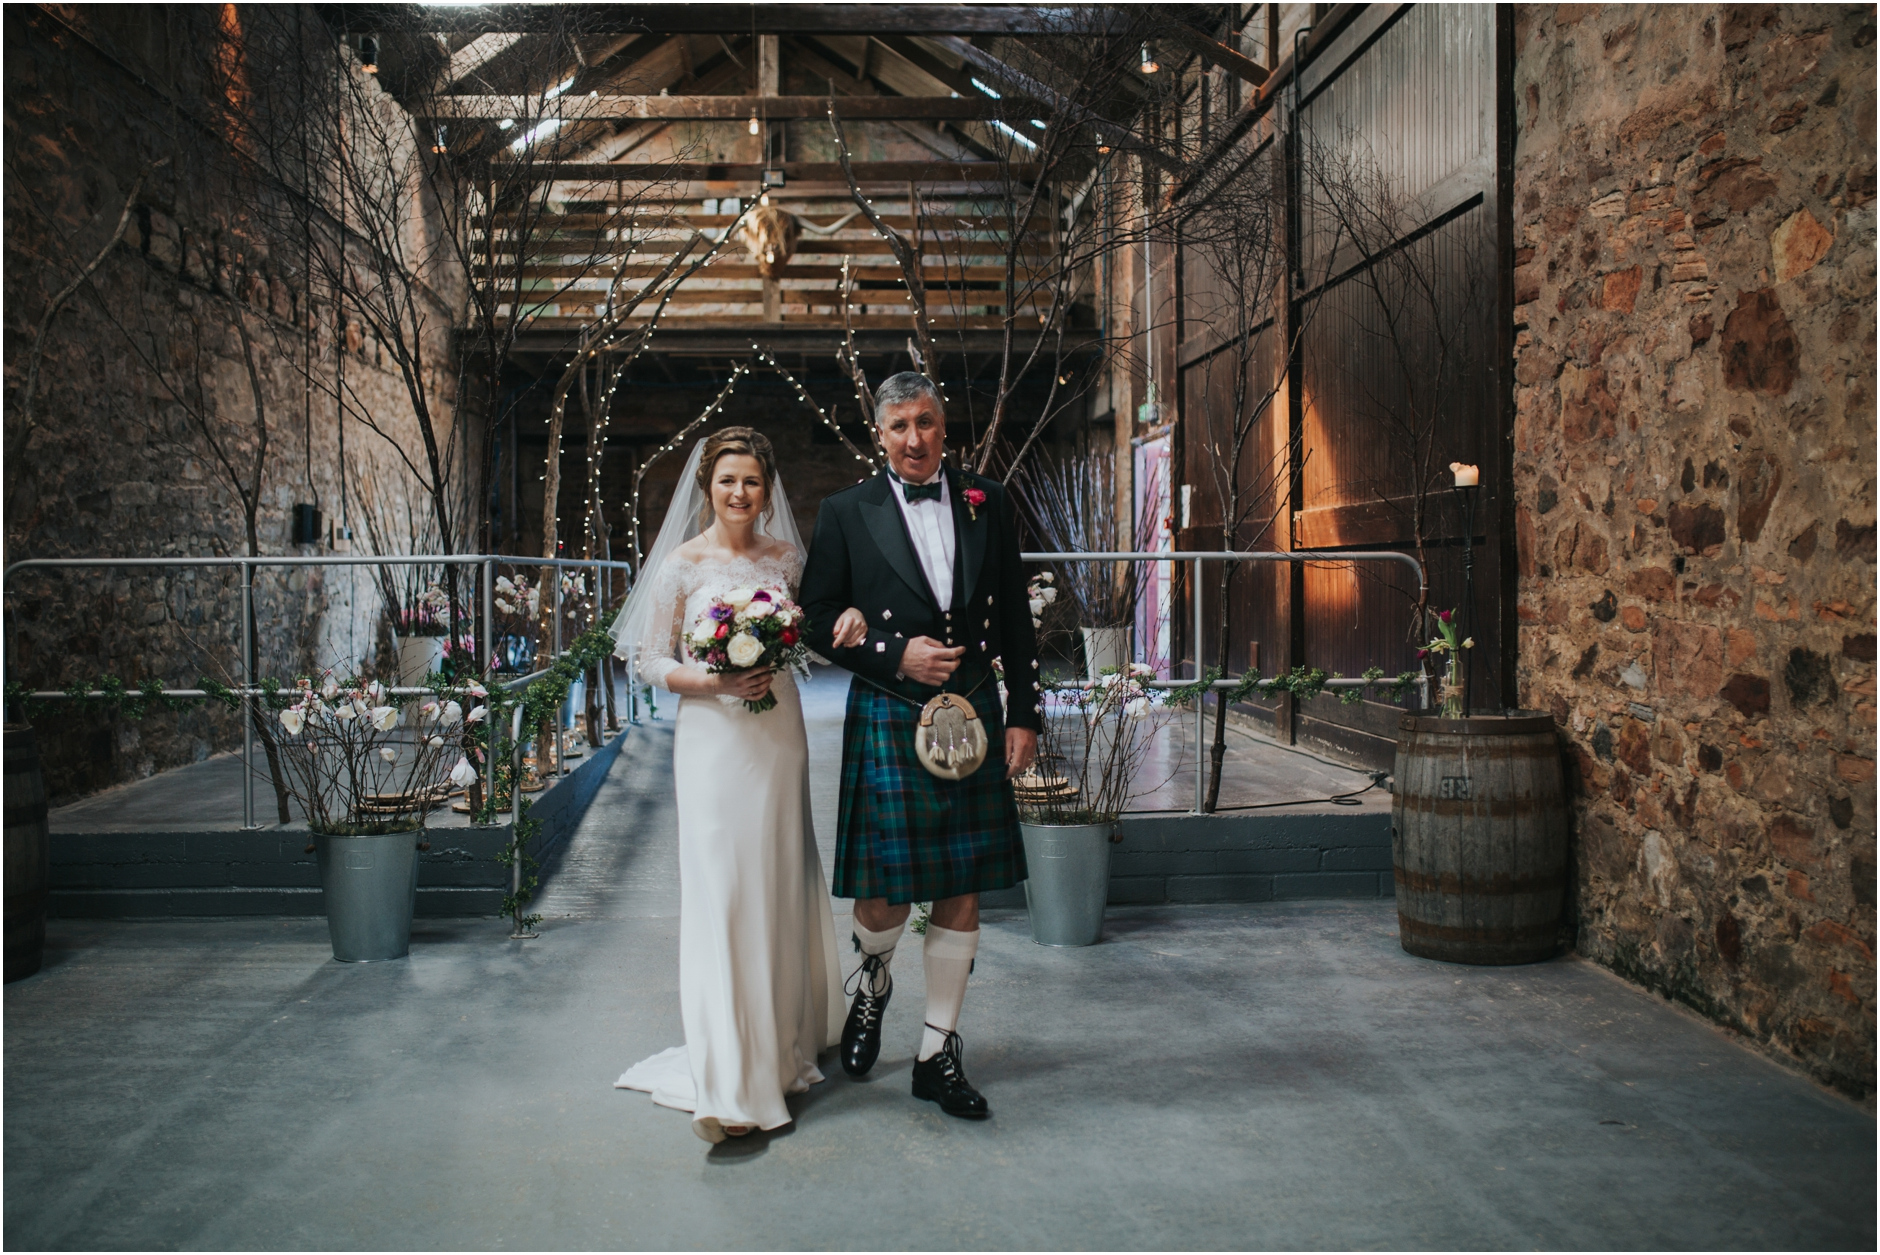 Edinburgh scotland wedding photographer best of 2018 2017Edinburgh scotland wedding photographer best of 2018 2017